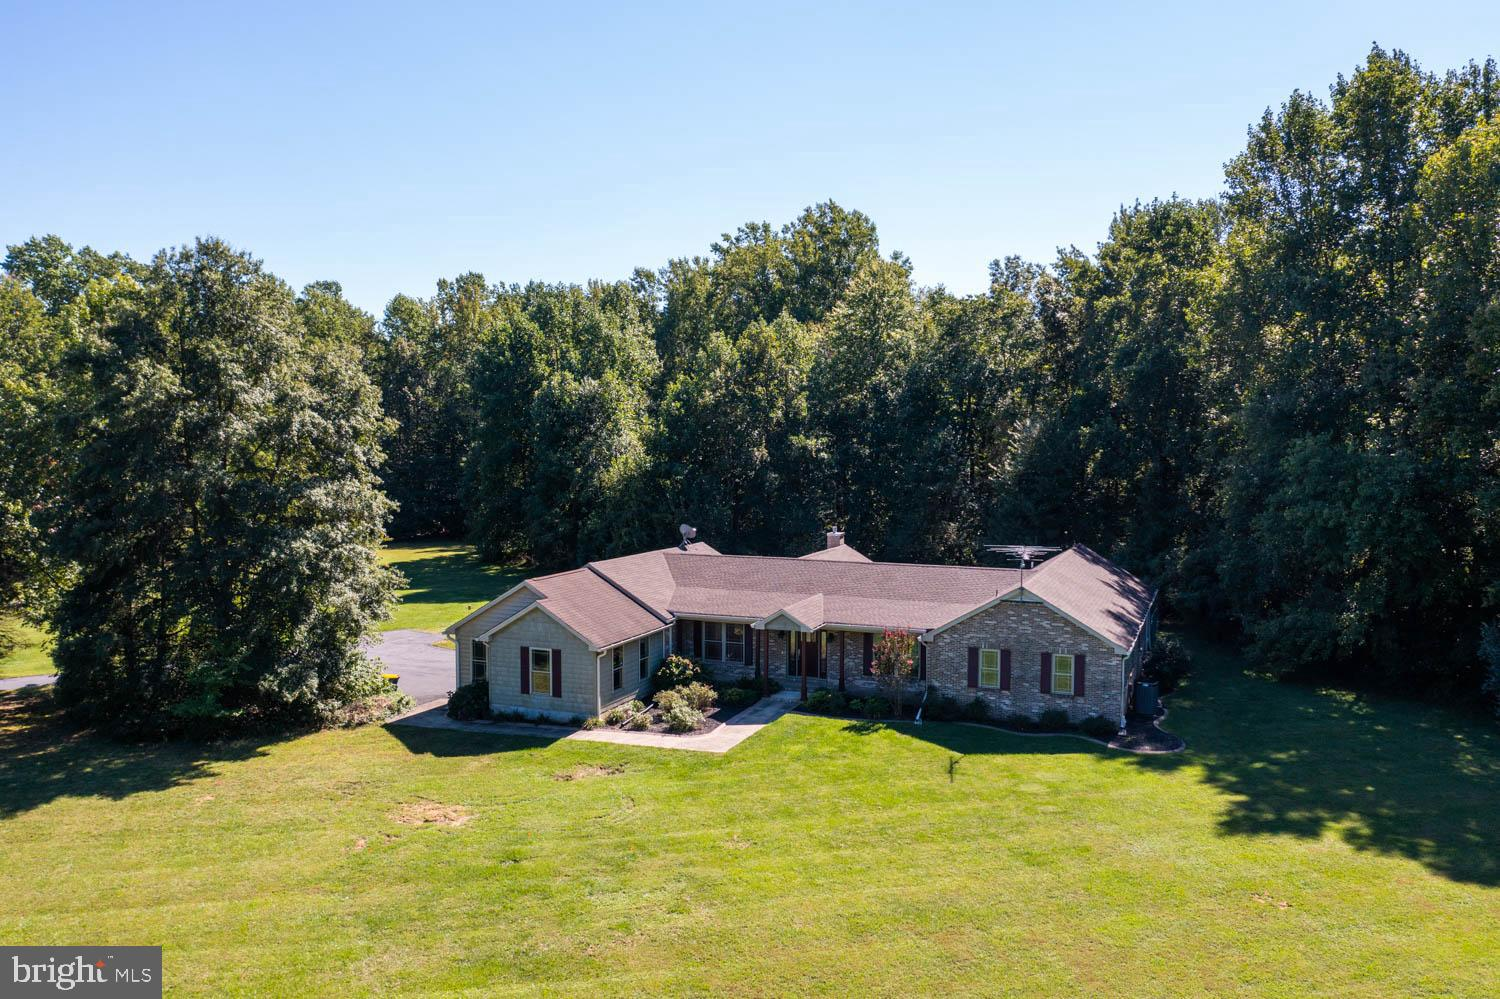 This is a rare find in Smyrna. 10+ acres. This home has so much to offer. If you're looking for that one floor living with some unique character this is it. Hardwood floors offered in the living and dining area, and ceramic HEATED  flooring offered in the kitchen and Master suite. Beautiful gas fireplace with a stone facing that gives you that country living look. 14 X 12 master bath with a ceramic walk-in shower.  A 46x20 garage, 20 x 18 deck, and a huge pole barn out back with concrete flooring and electric.  You need to see this to appreciate. Make your appointment today. Seller offering $10,000 towards closing cost.